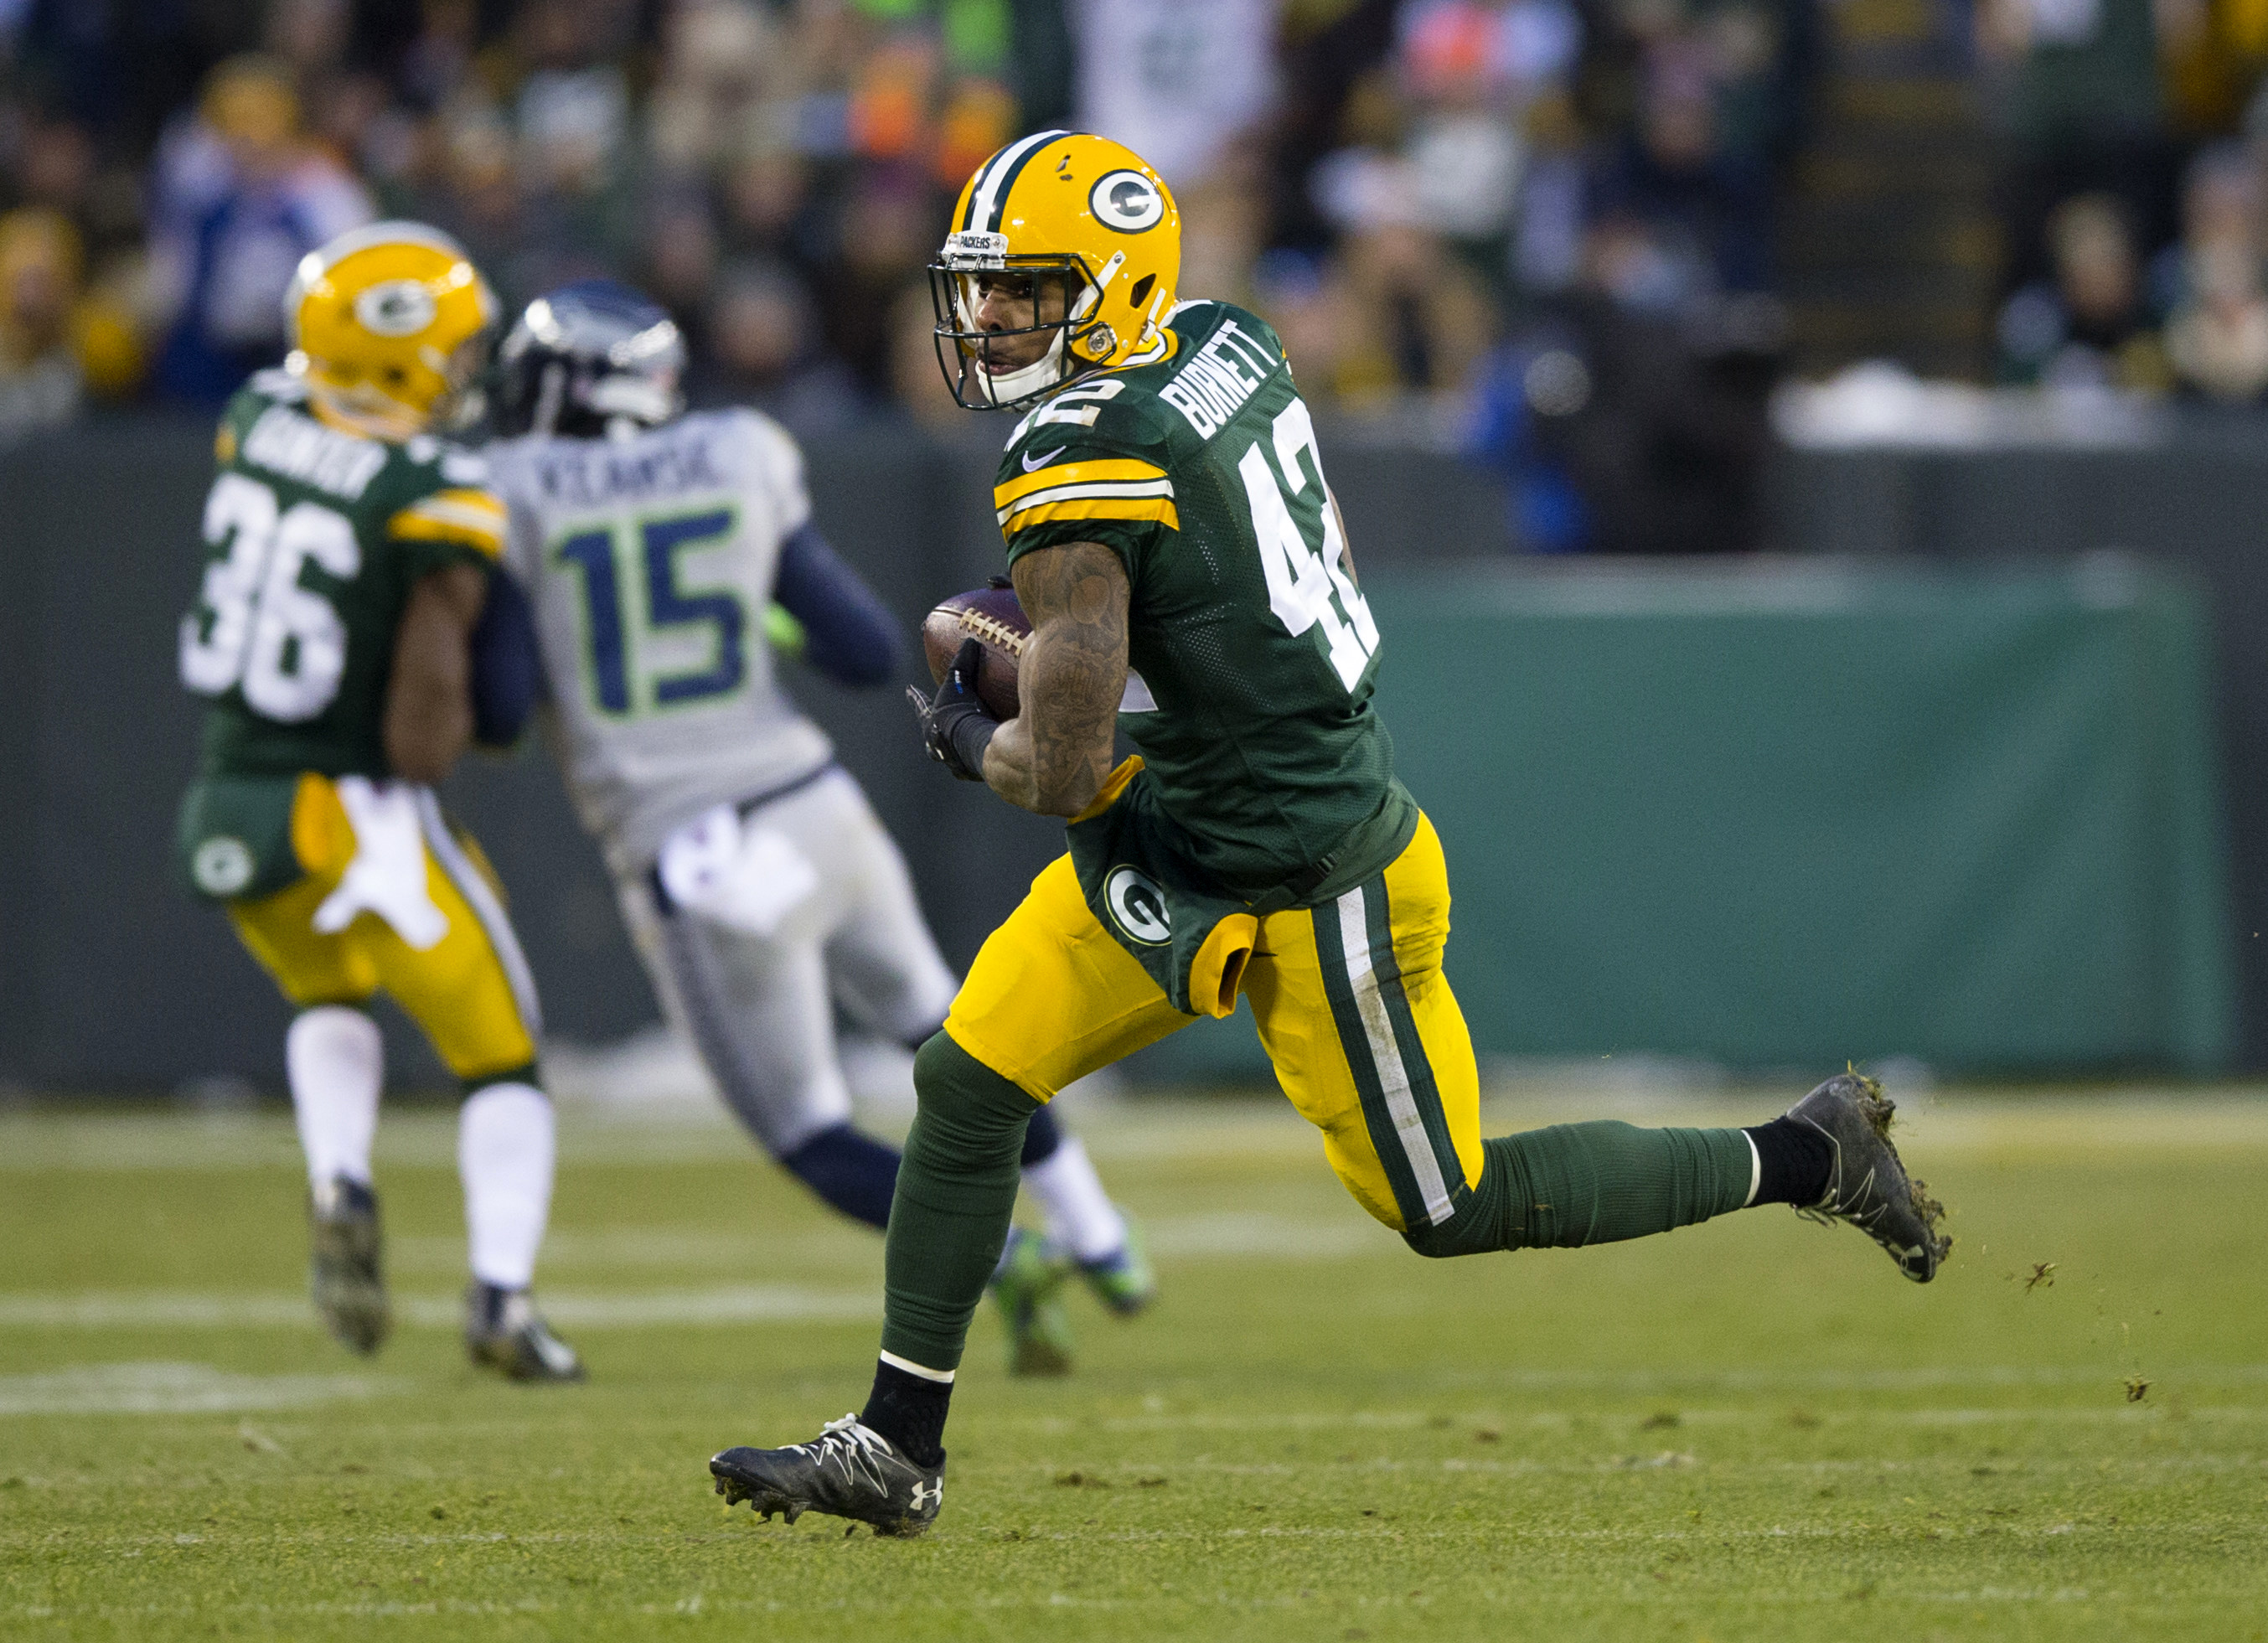 Packers safety Morgan Burnett ruled out for Sunday s game